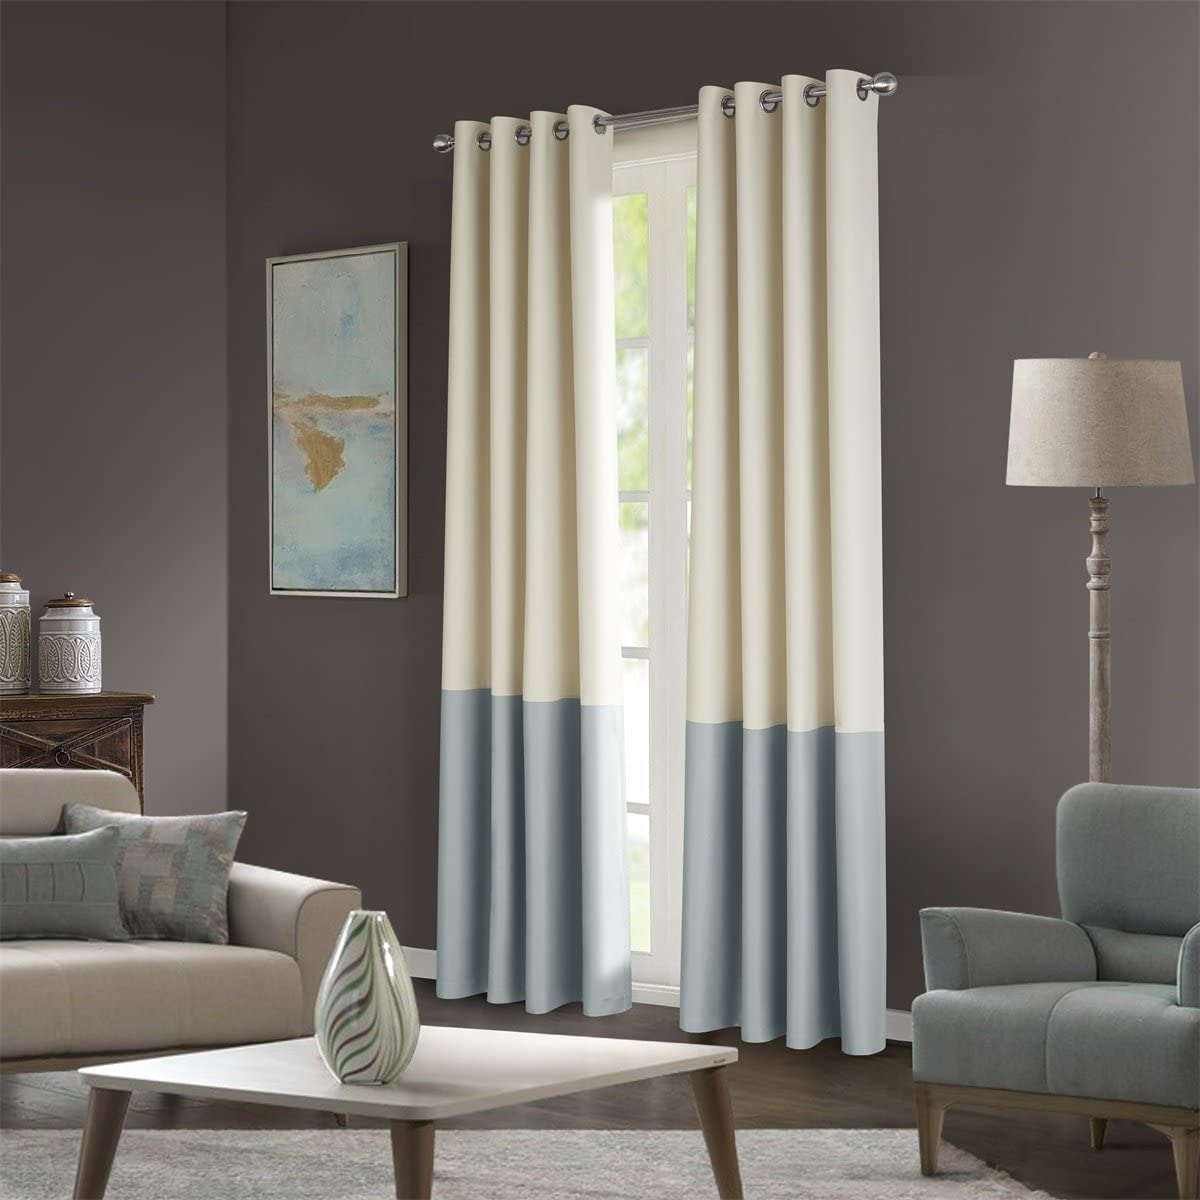 Dreaming Casa Stitching Style Two Tone Curtains Color Block Curtains 100 Wide Blackout Wide Panel Curtains Light Reducing Window Treatment Grommet Top 2 Panels Ivory Light Grey 100 W x 63 L